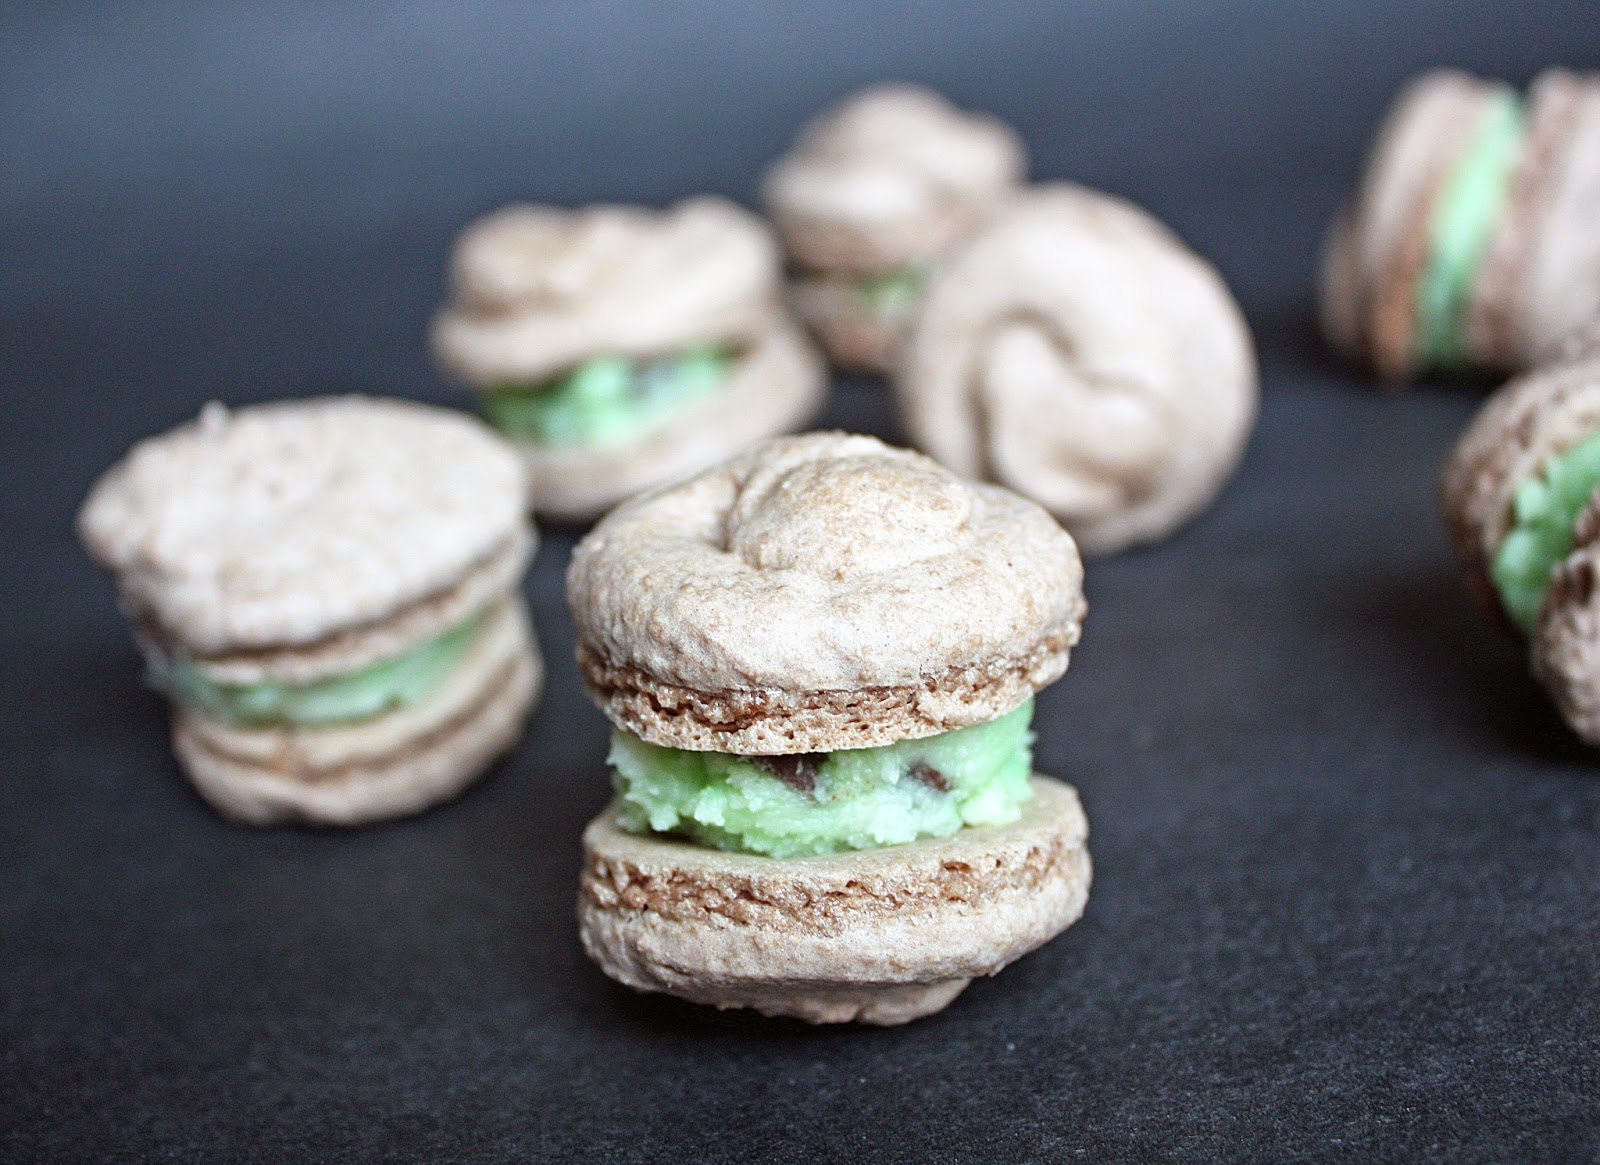 gluten-free vegan chocolate macarons with mint chocolate chip frosting